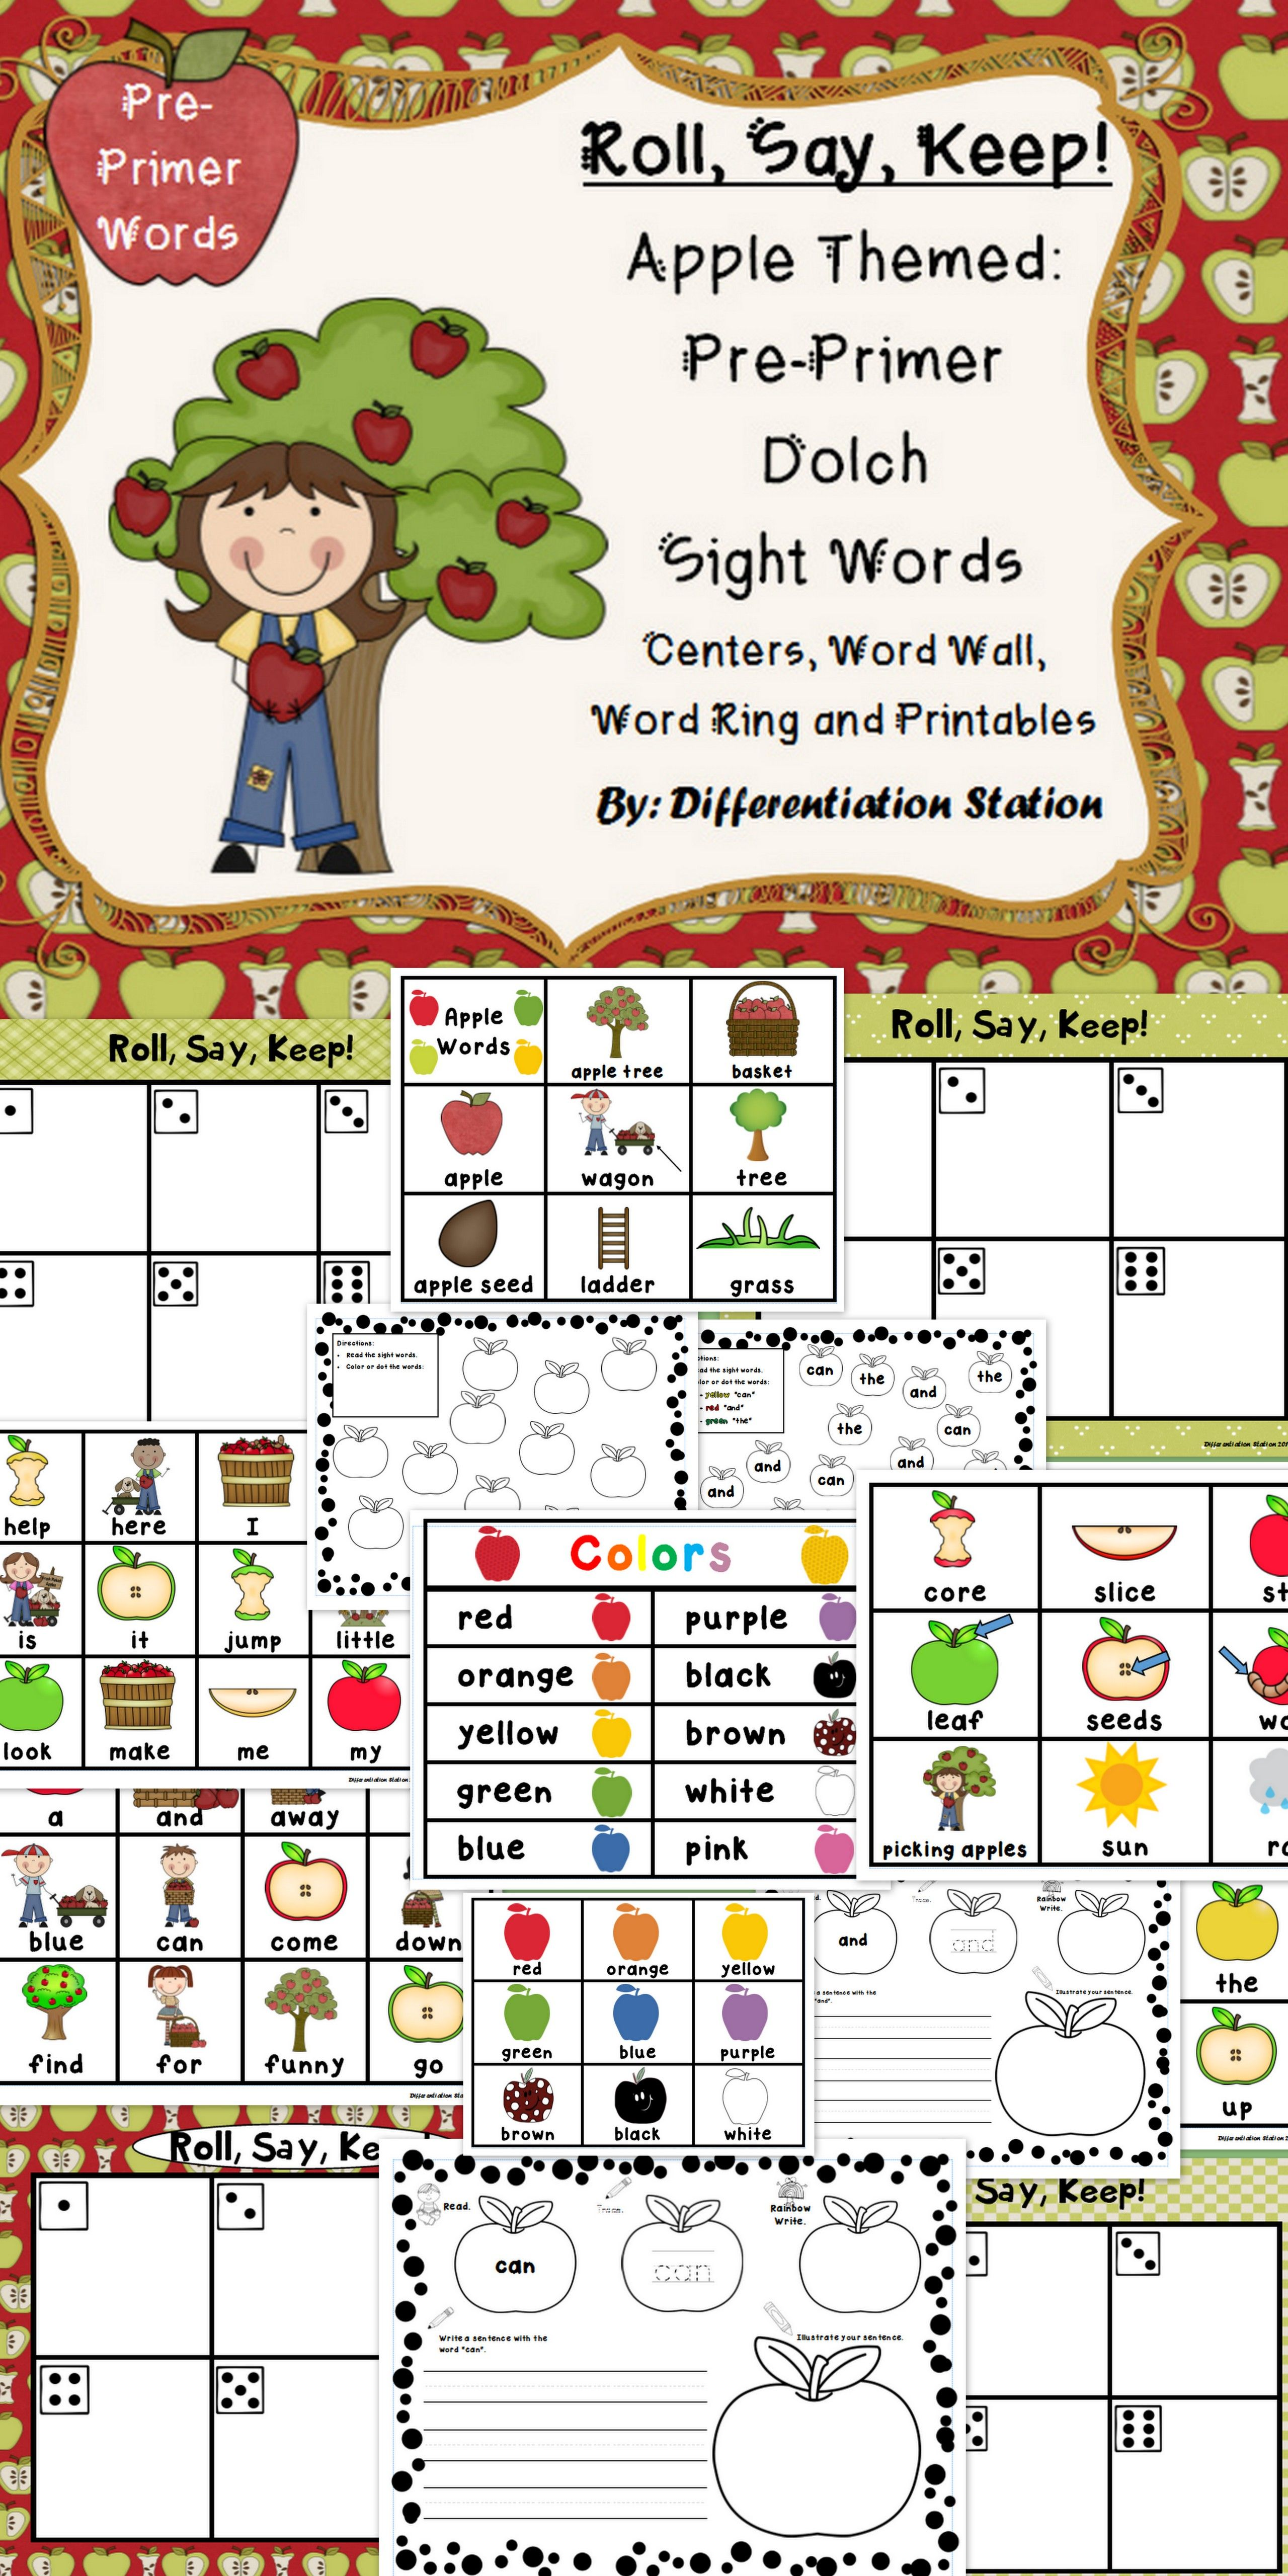 Apple Roll Say Keep Pre Primer Dolch Sight Word Center